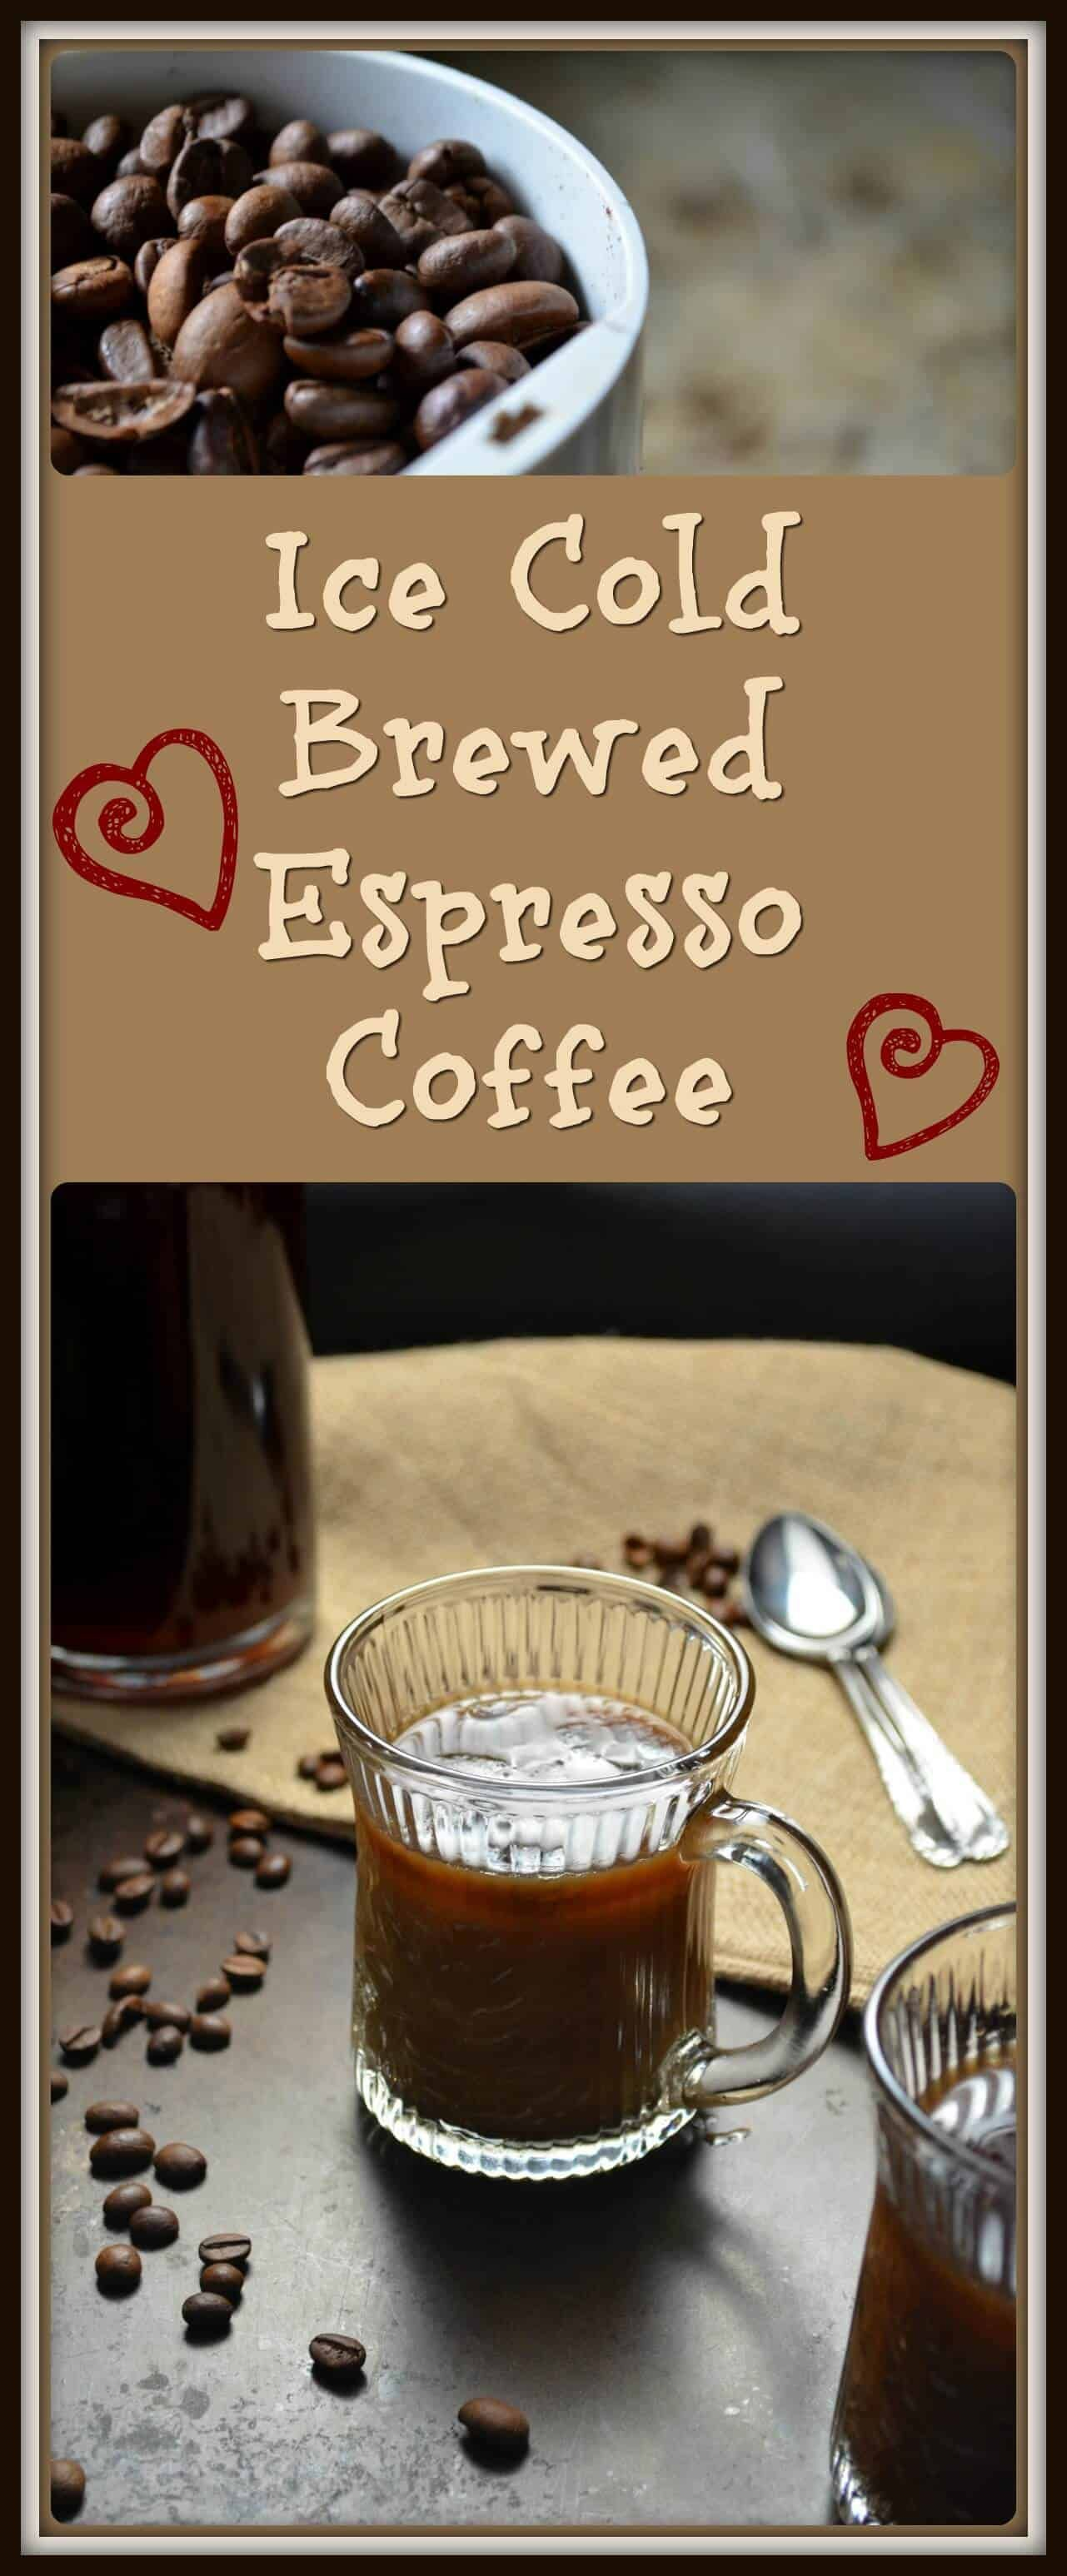 Ice cold brewed espresso coffee recipe with images